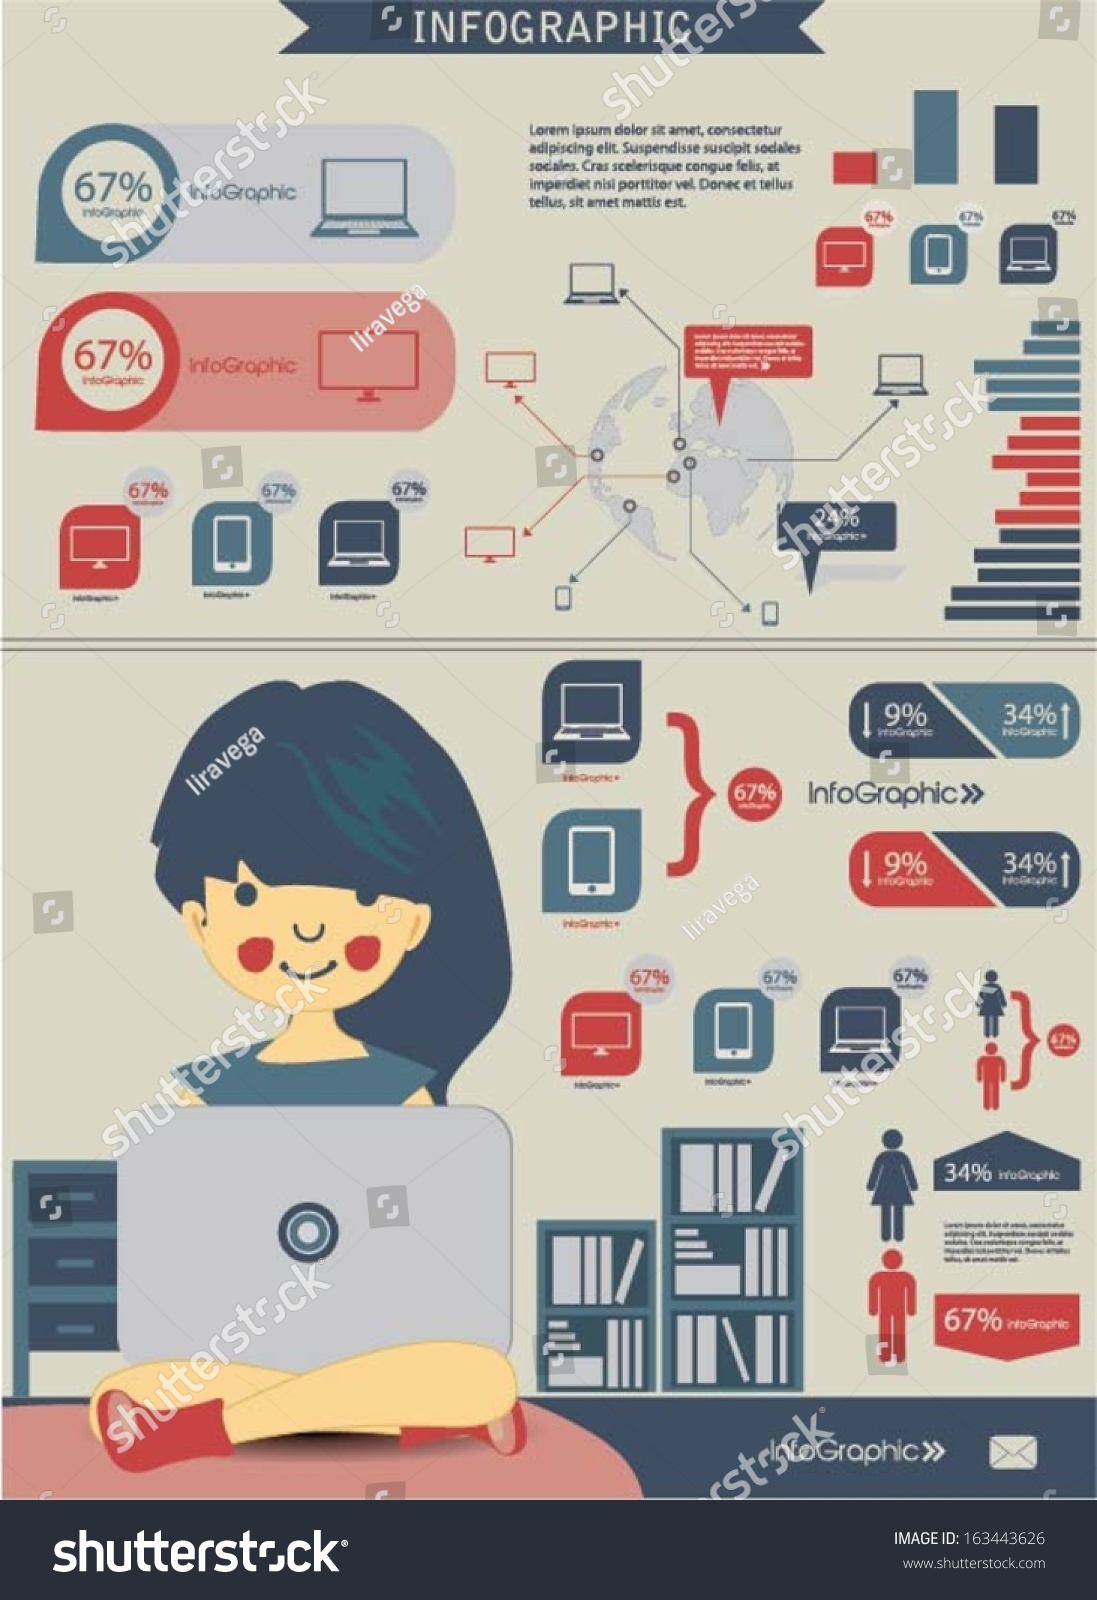 Mind the Graph  Infographic Maker  Create Infographics